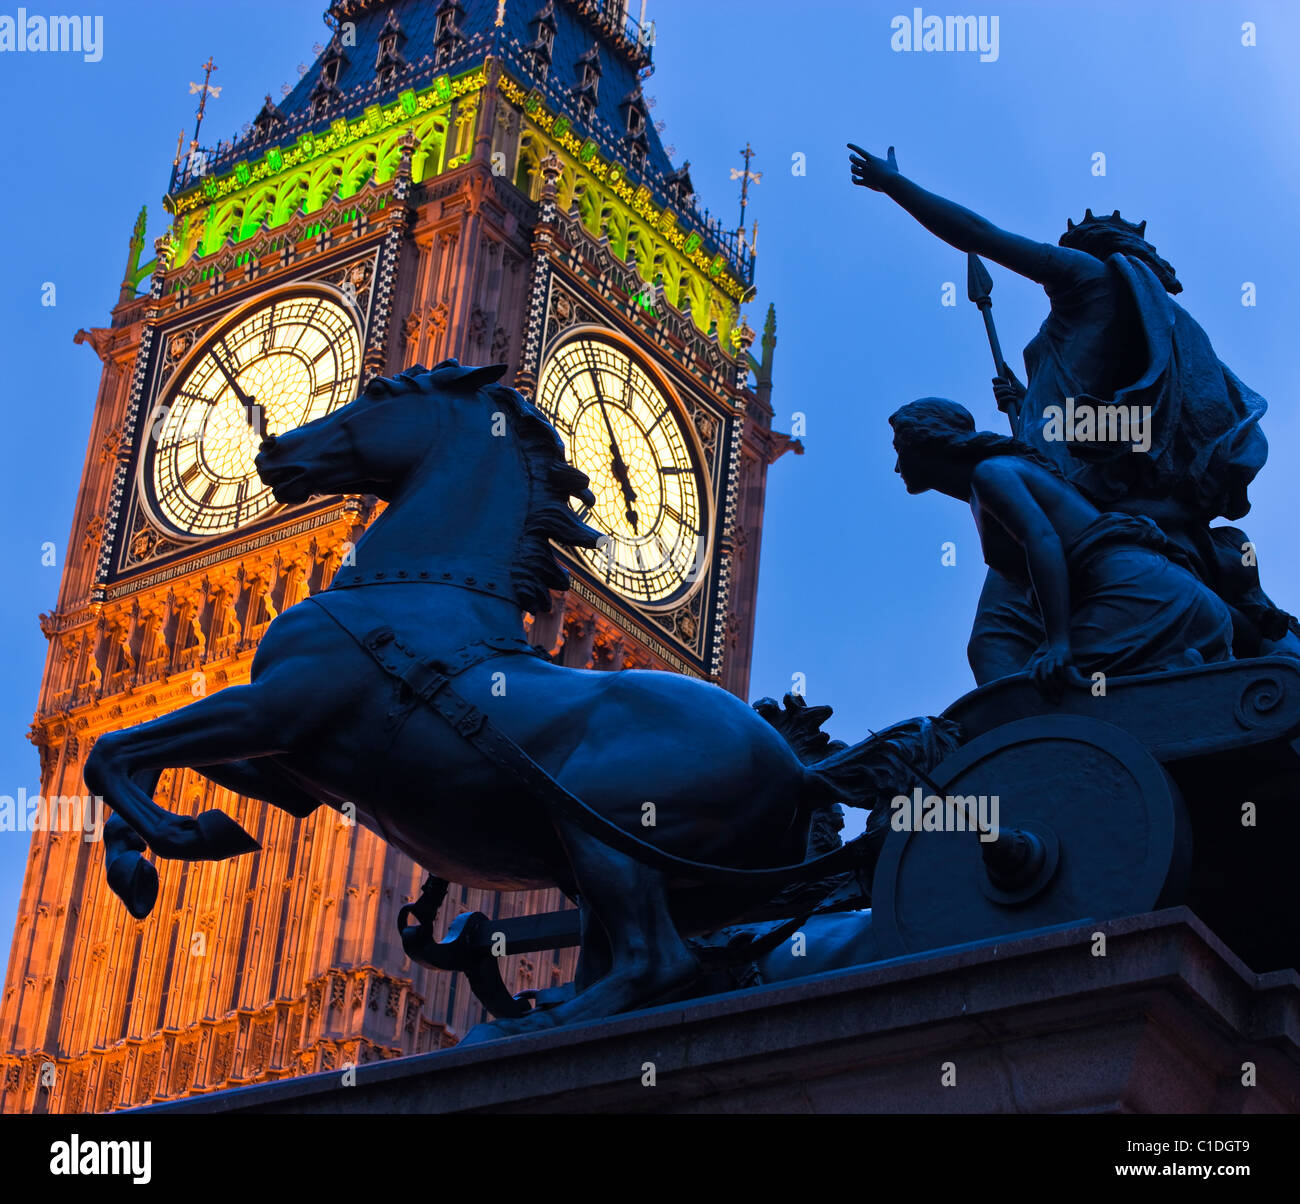 Big Ben and Boadicea's Chariot Westminster London England UK in evening light - Stock Image